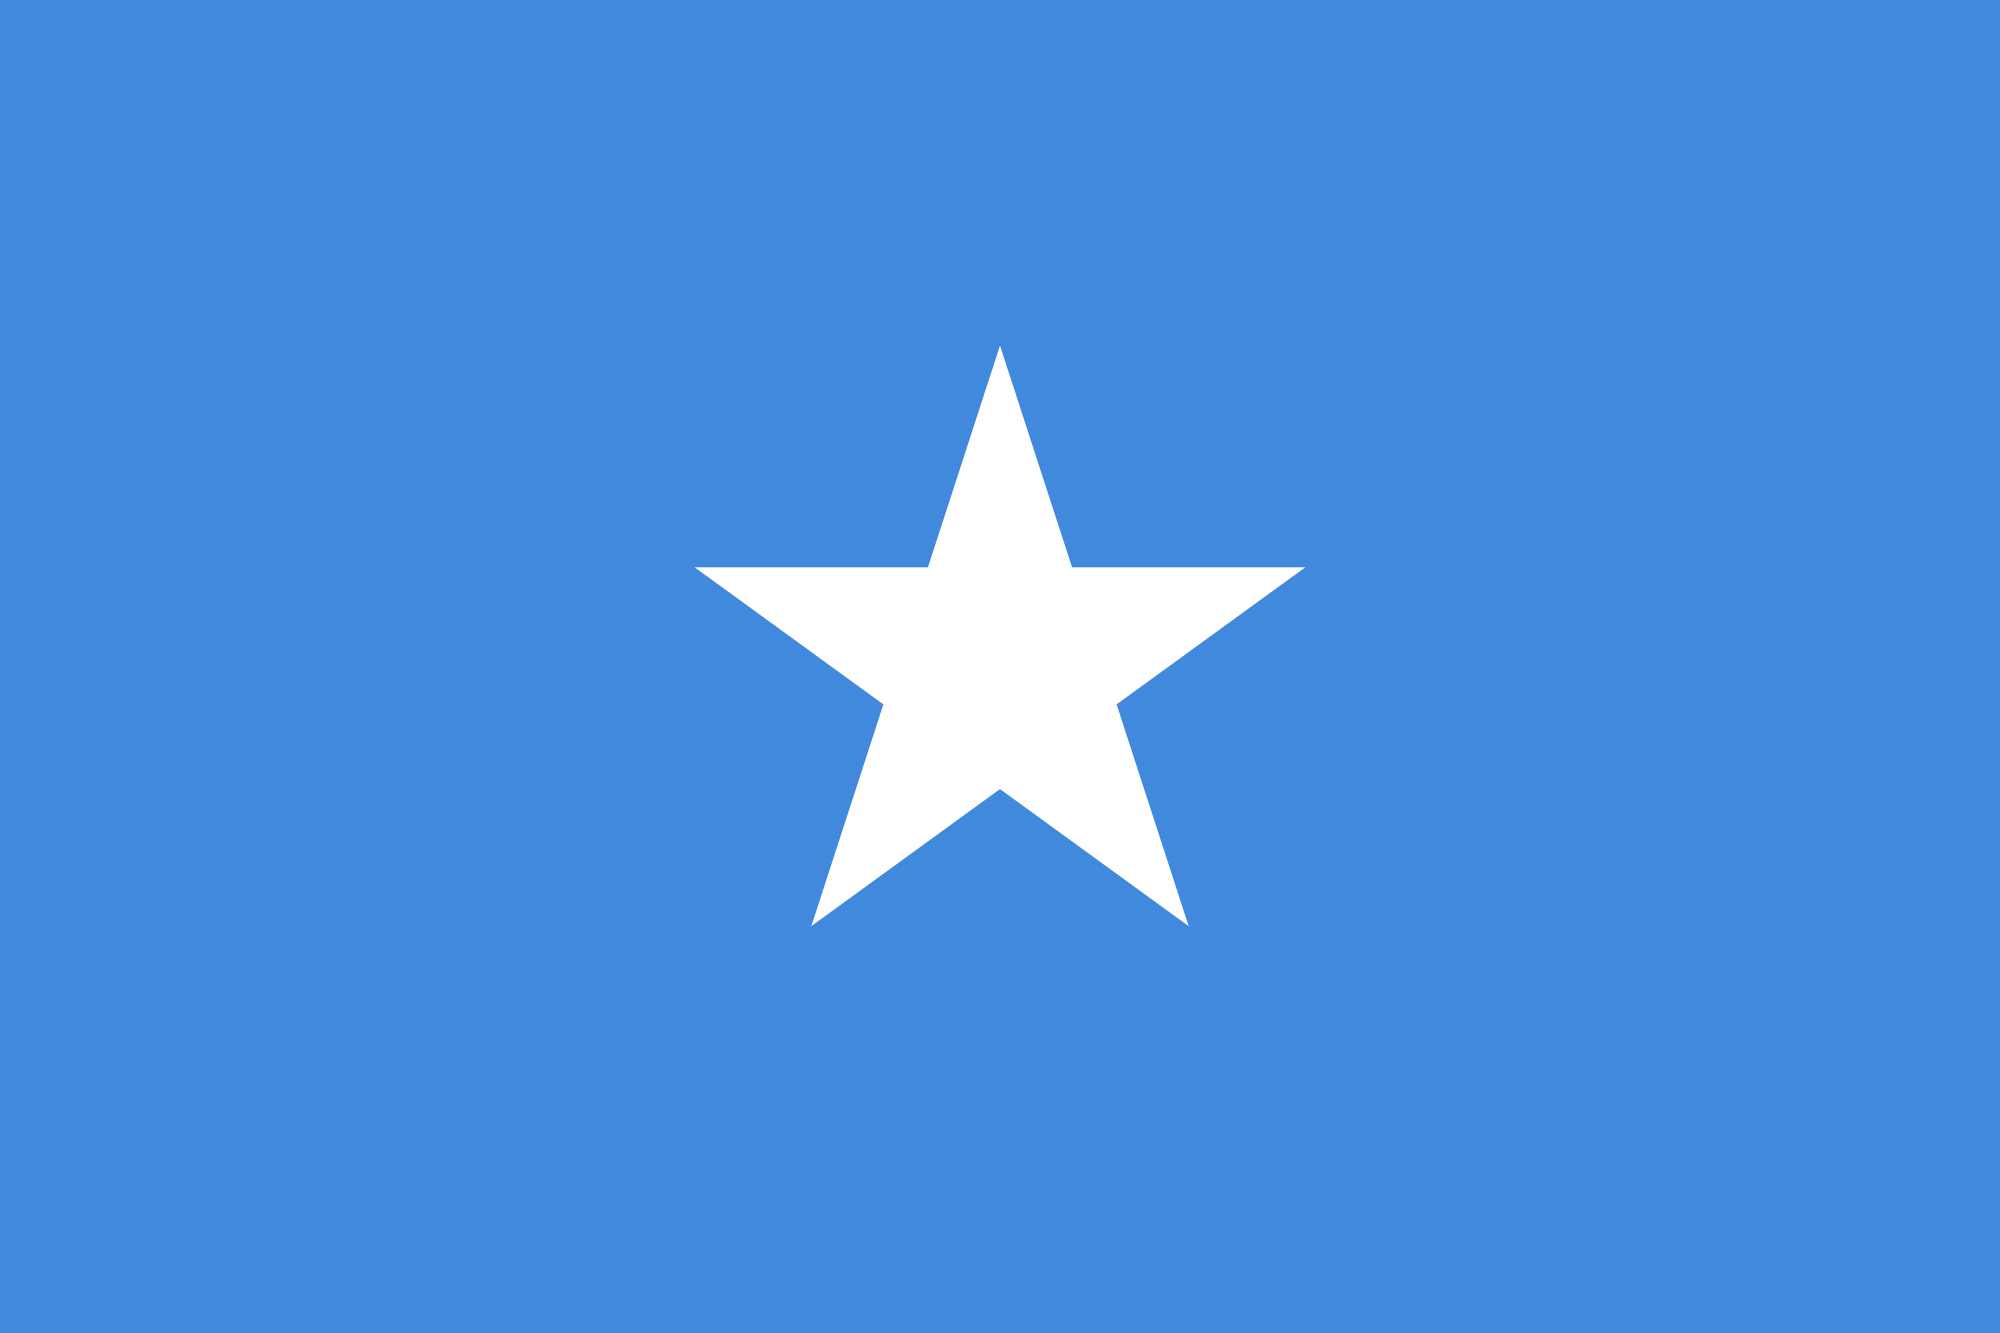 Somalia Flag 3D Free Wallpaper Android Apps on Google Play